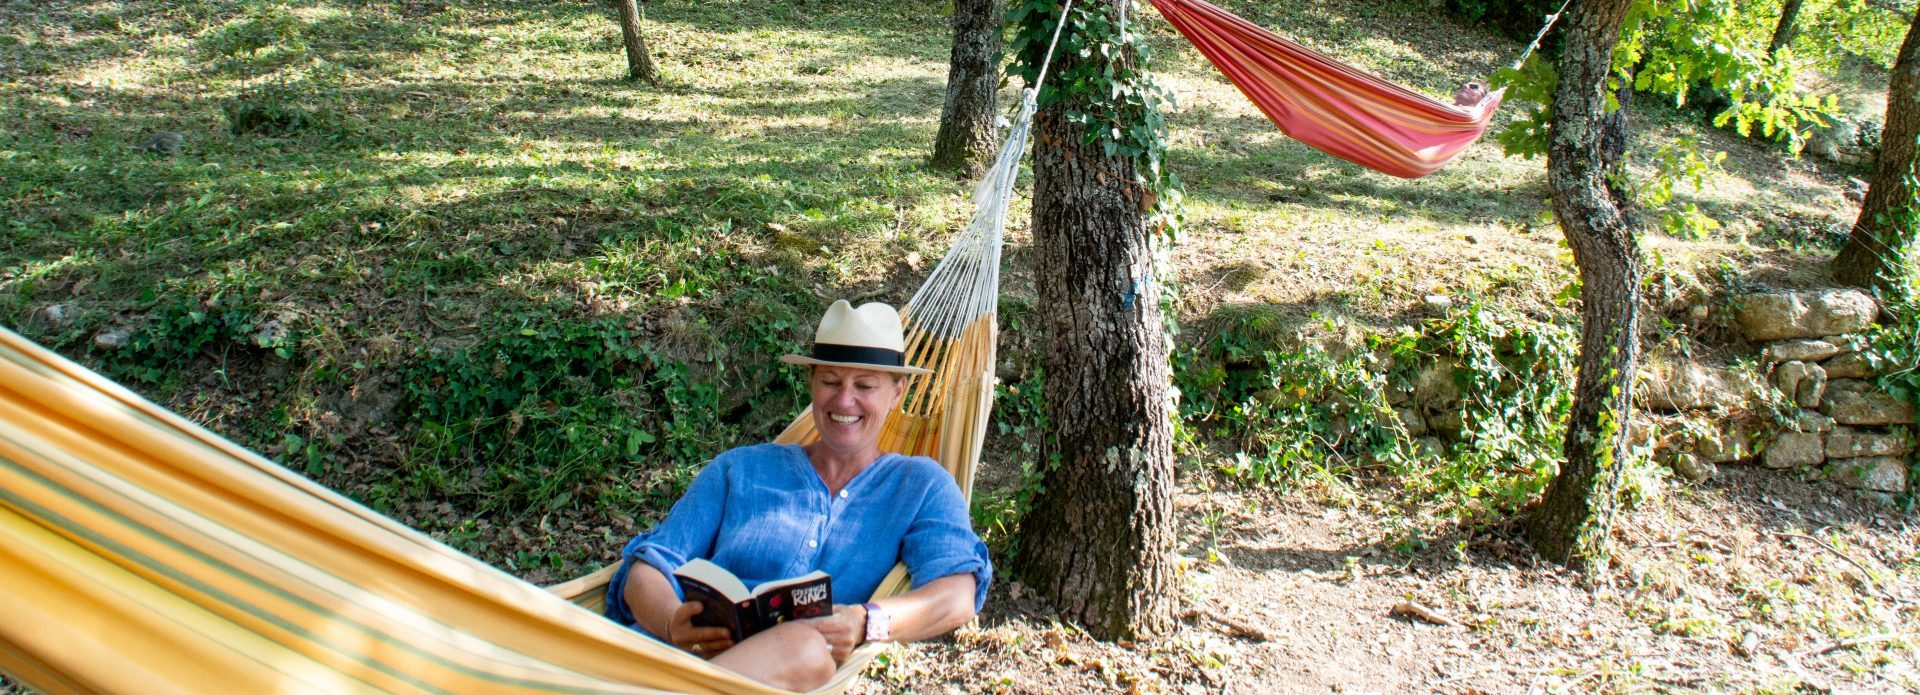 Camping Le Luberon : Slider 2 695